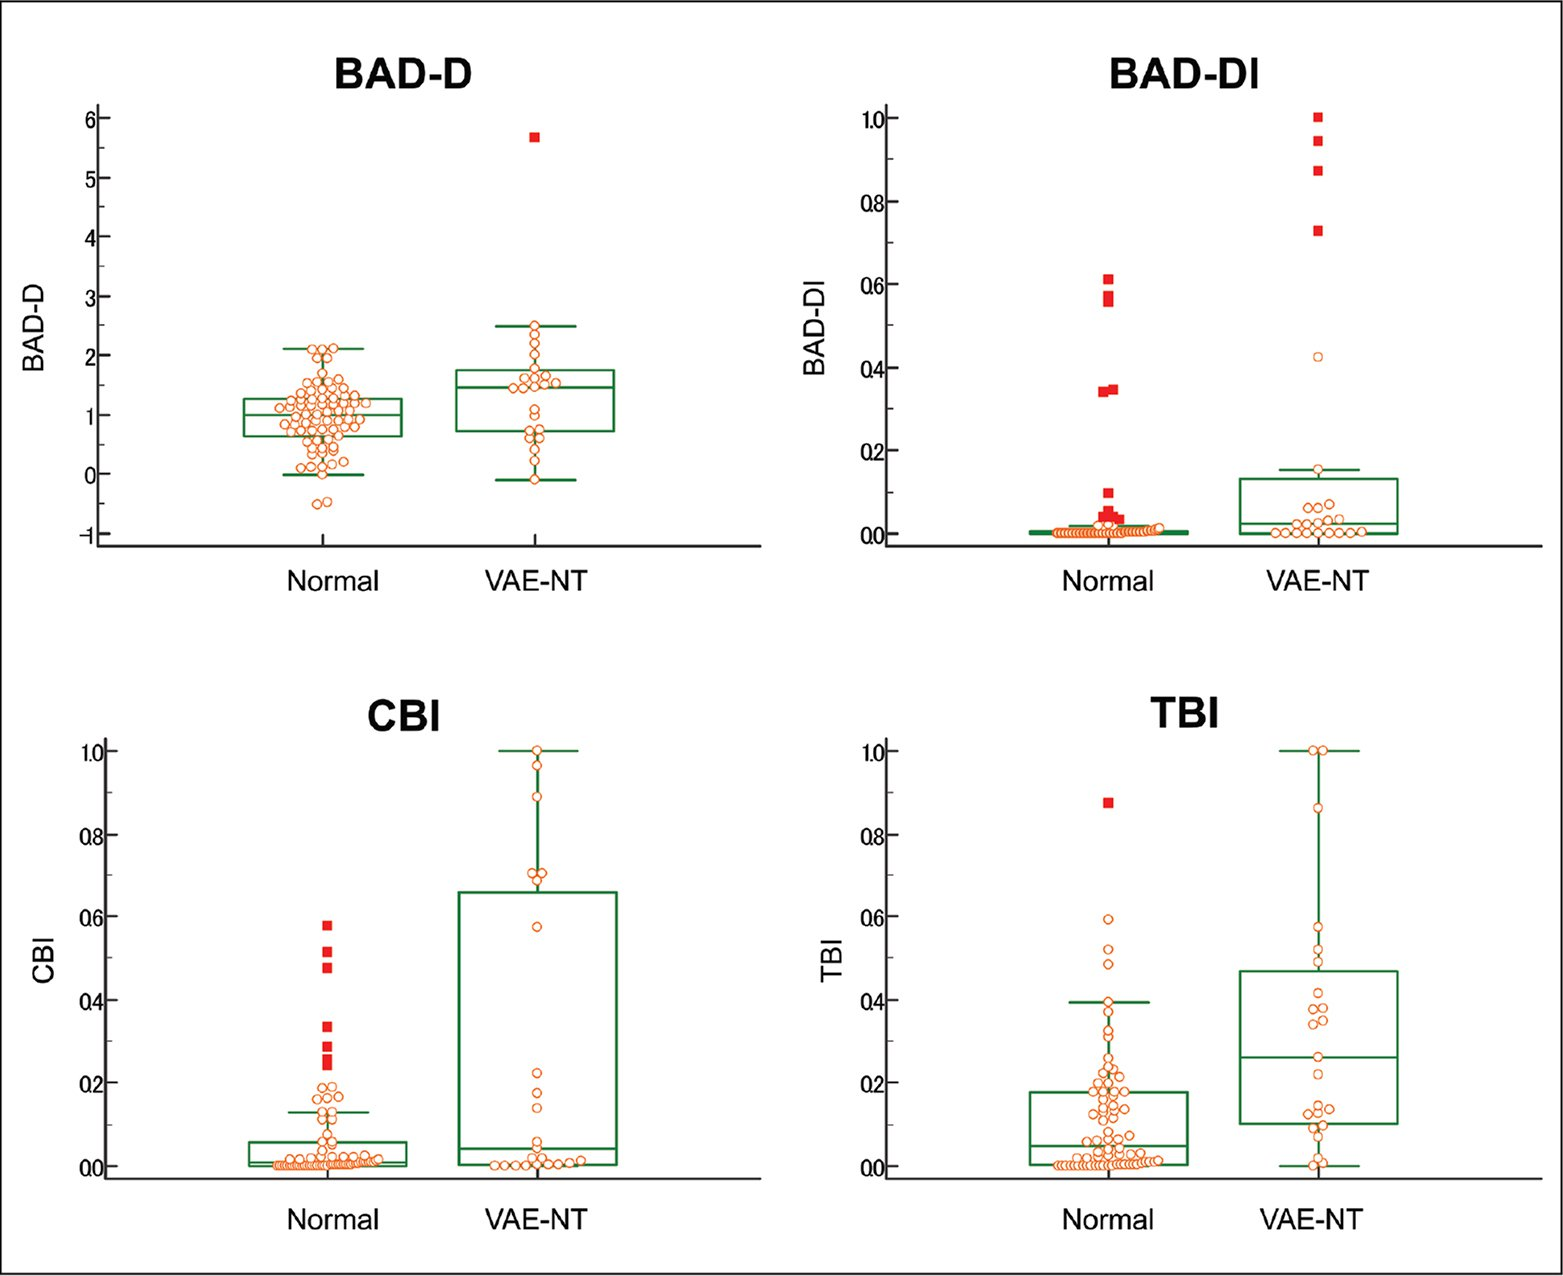 The box and dot plots showing distribution of the BAD-D (top left), BAD-DI (top right), CBI (bottom left), and TBI (bottom right) for the normal group and the subclinical ectasia group (fellow eye from patients with very asymmetric ectasia with normal topography). BAD-D = Belin/Ambrósio Enhanced Ectasia Deviation; BAD-DI = Belin/Ambrósio Enhanced Ectasia Deviation normalized index; CBI = Corvis Biomechanical Index; TBI = Tomographic Biomechanical Index; VAE-NT = fellow eye from patients with very asymmetric ectasia with normal topography